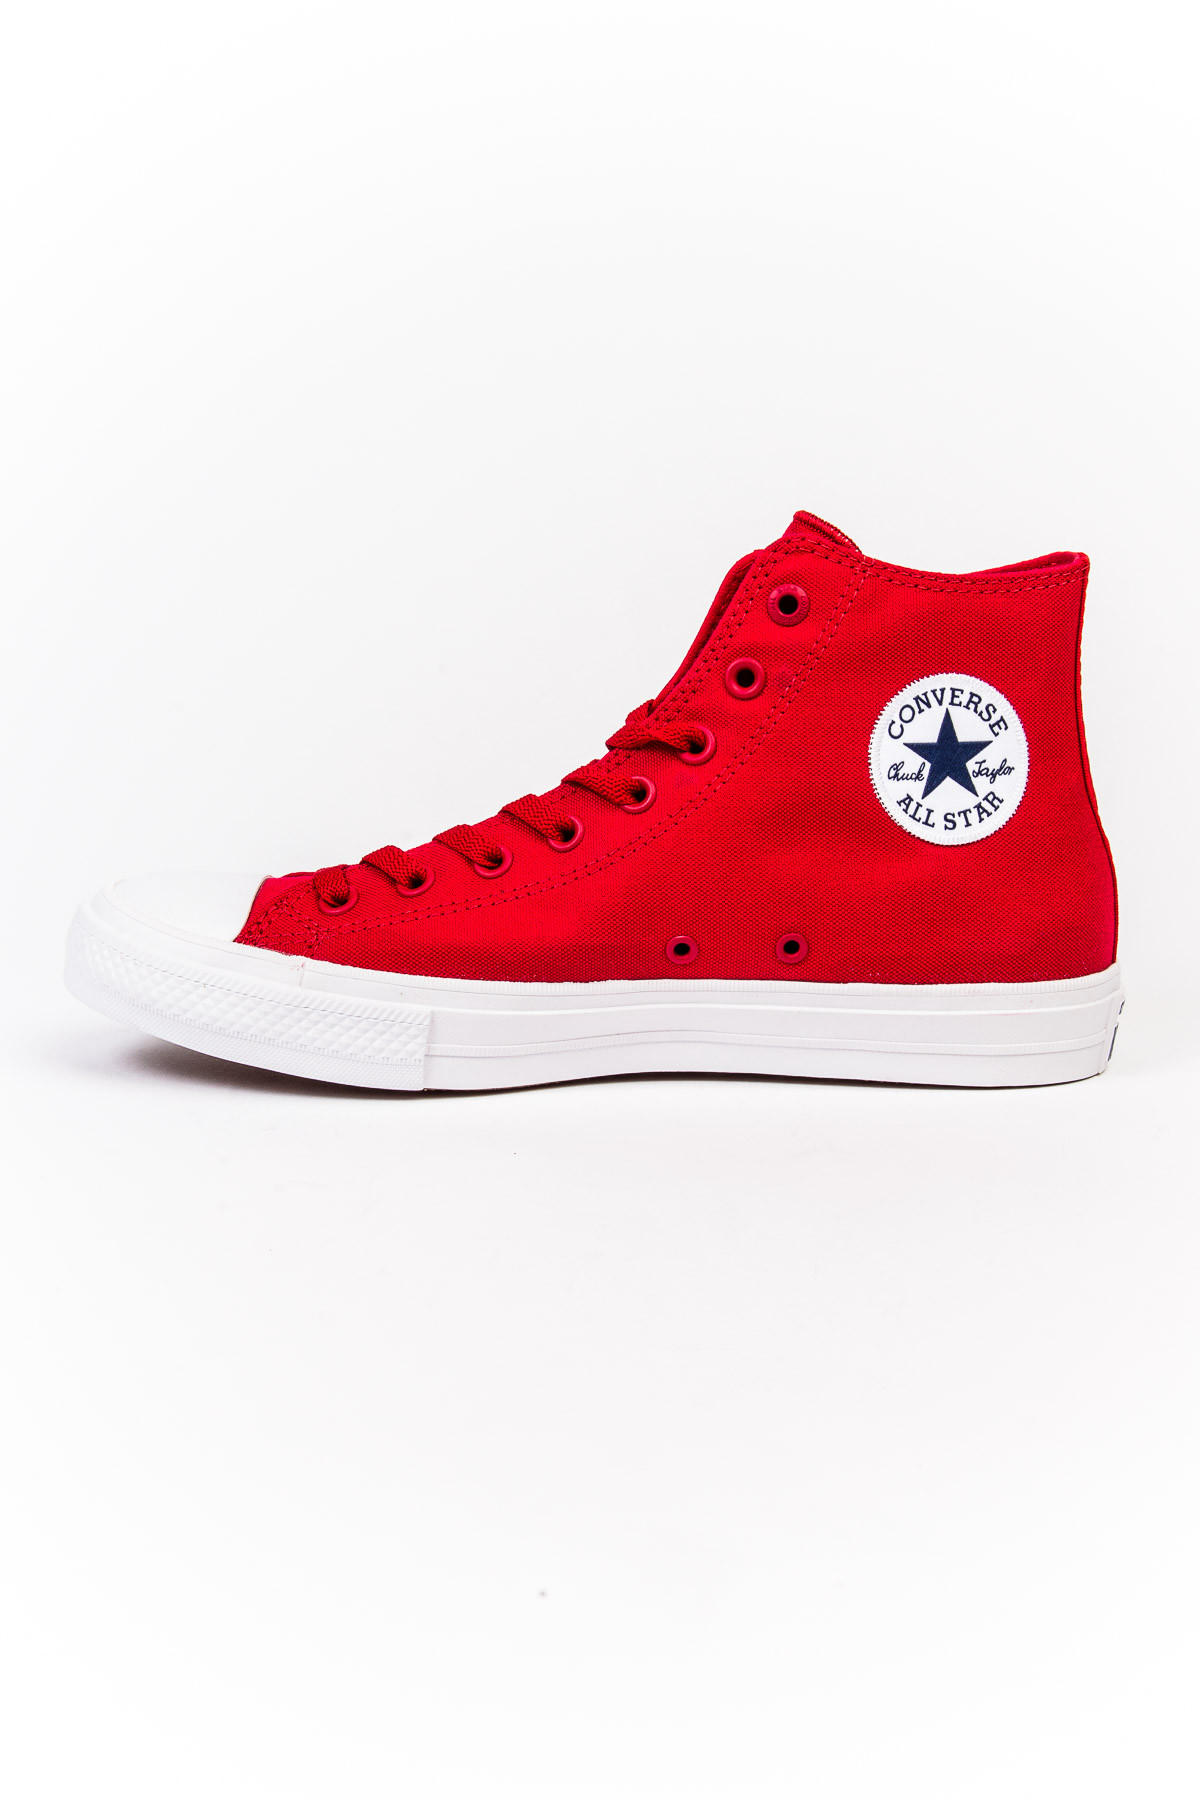 Converse Chuck Taylor All Star II Red Hi from Probus  dbf4b9aabf